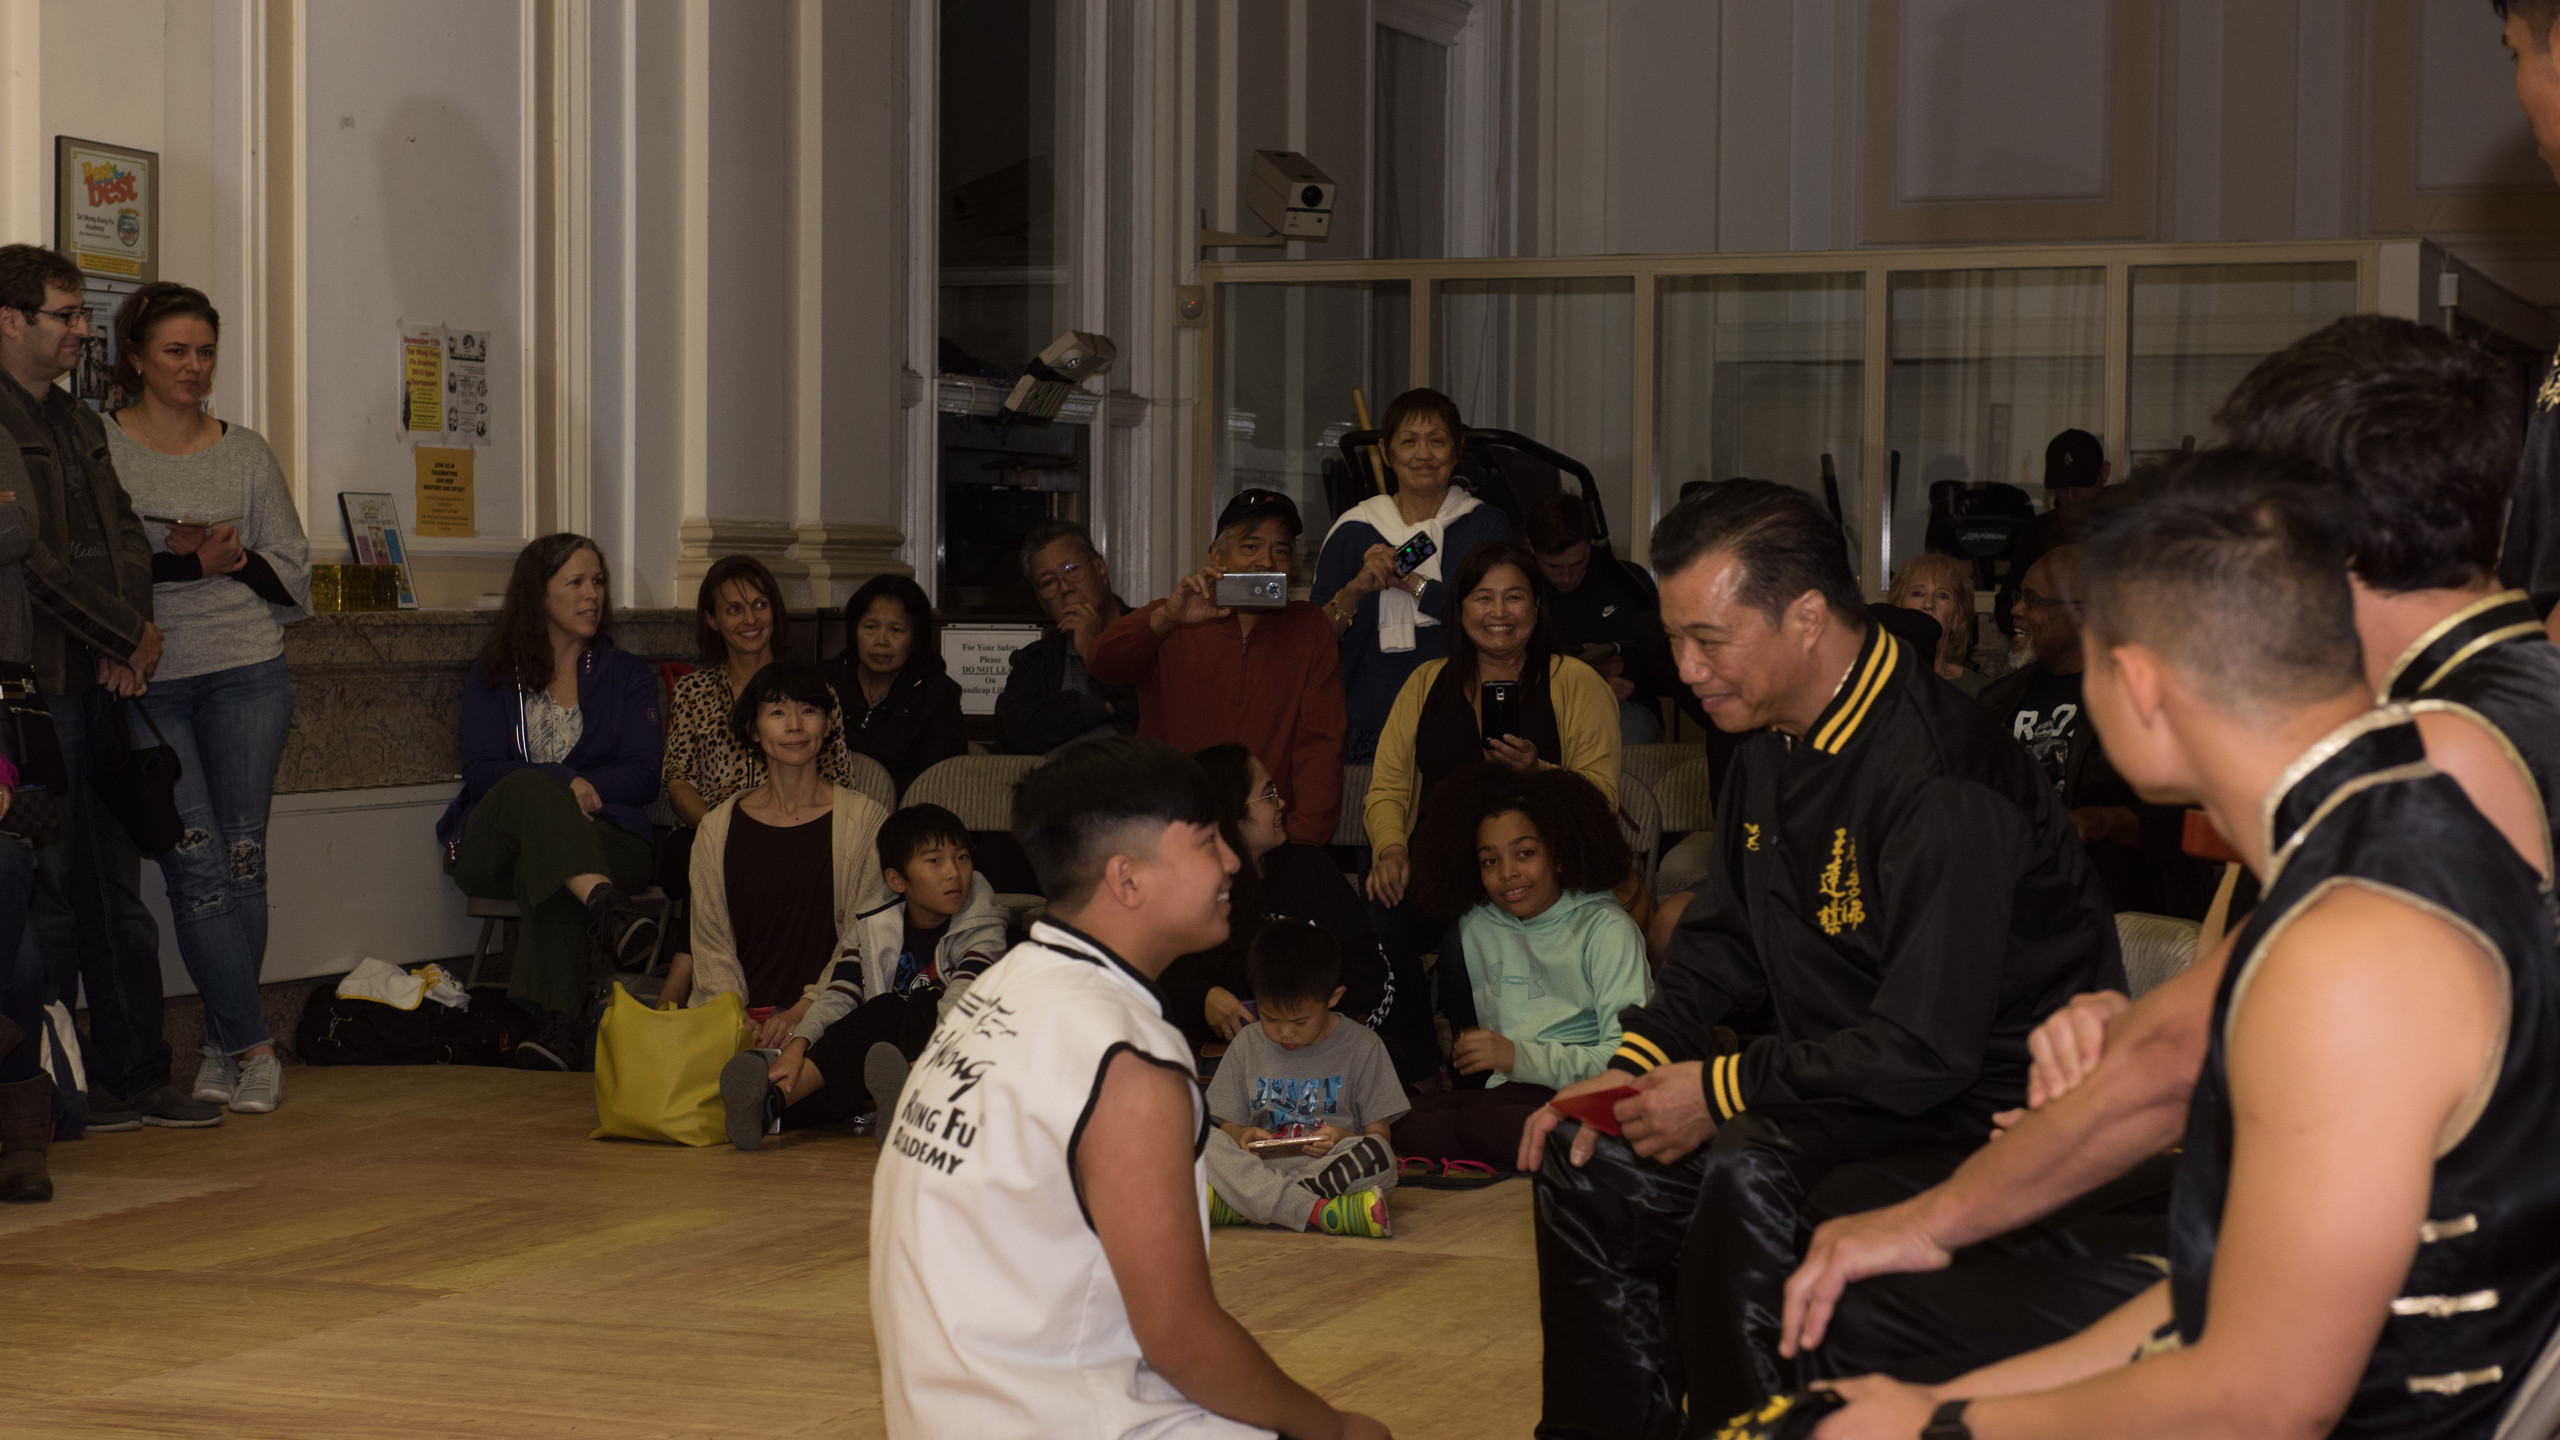 Upon receiving their black belt, each graduate receives a few words of encouragement from Grand Master Tat Wong.